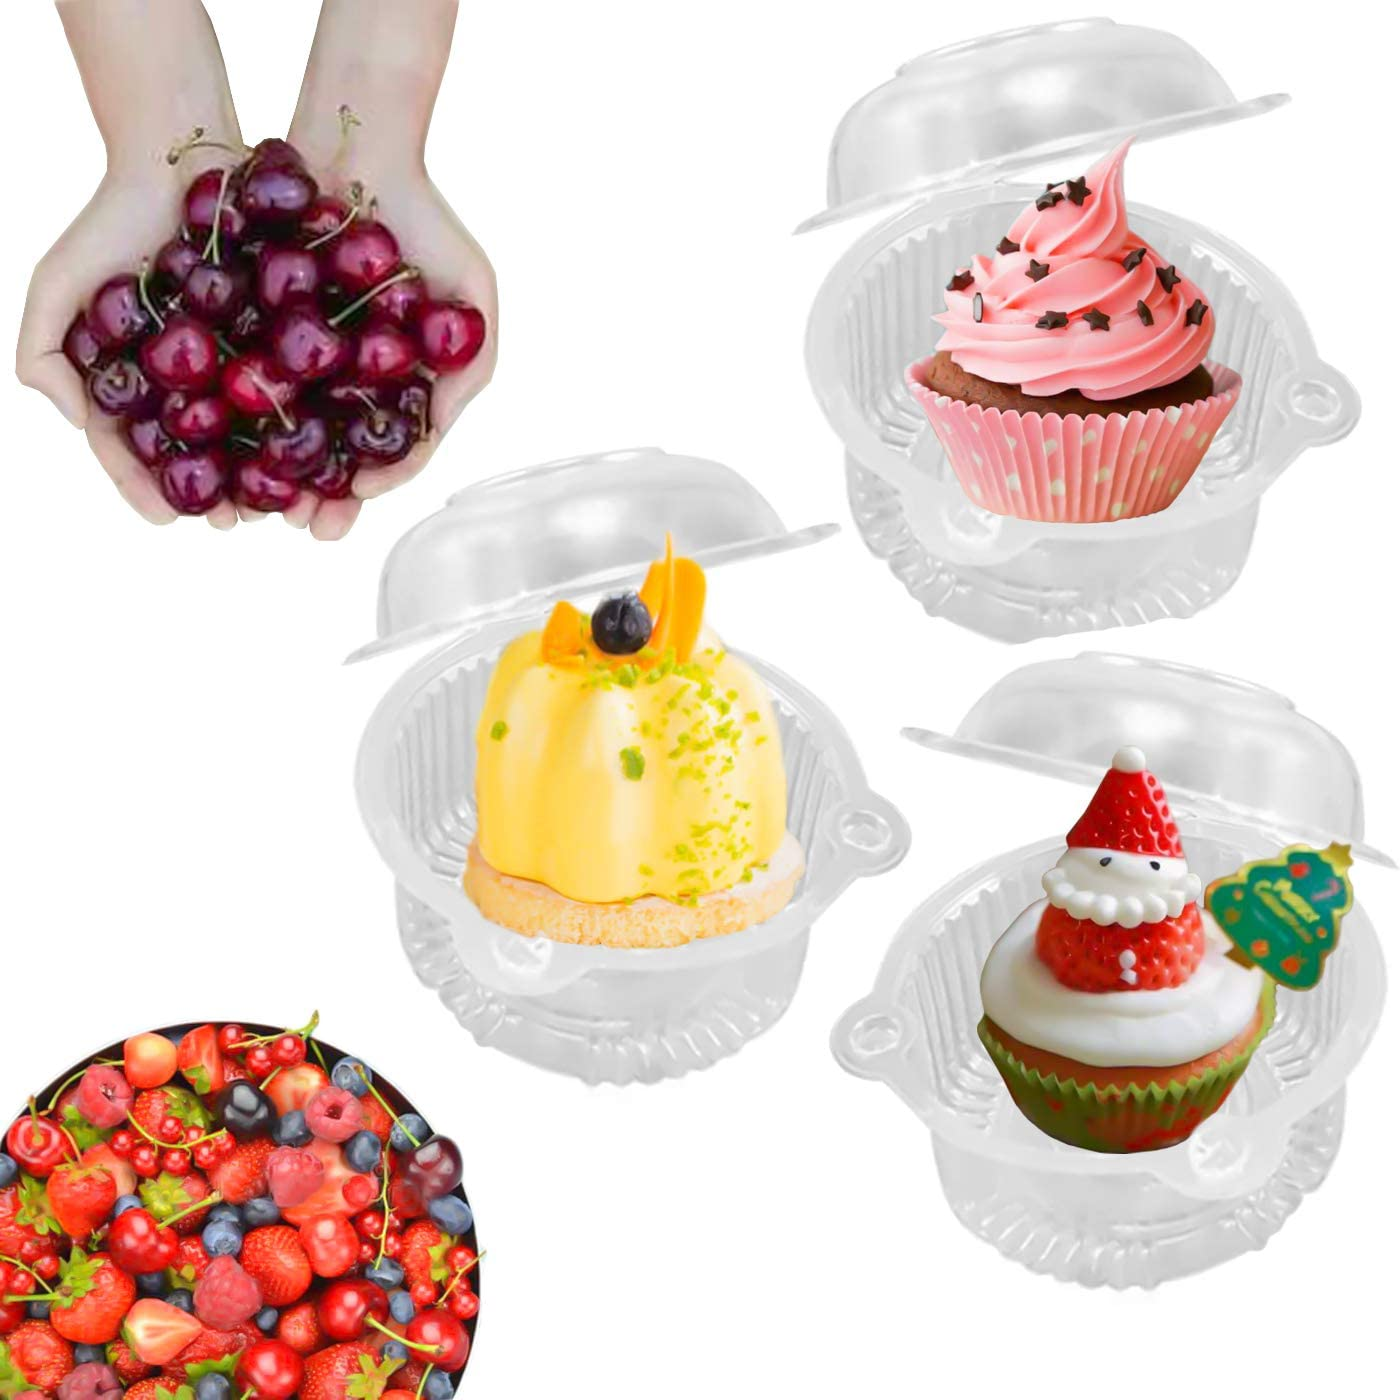 MotBach 100 Pcs Clear CupCake Holder Plastic Individual Cupcake Case Single CupCake Dome Holders Boxes Cups with Lids